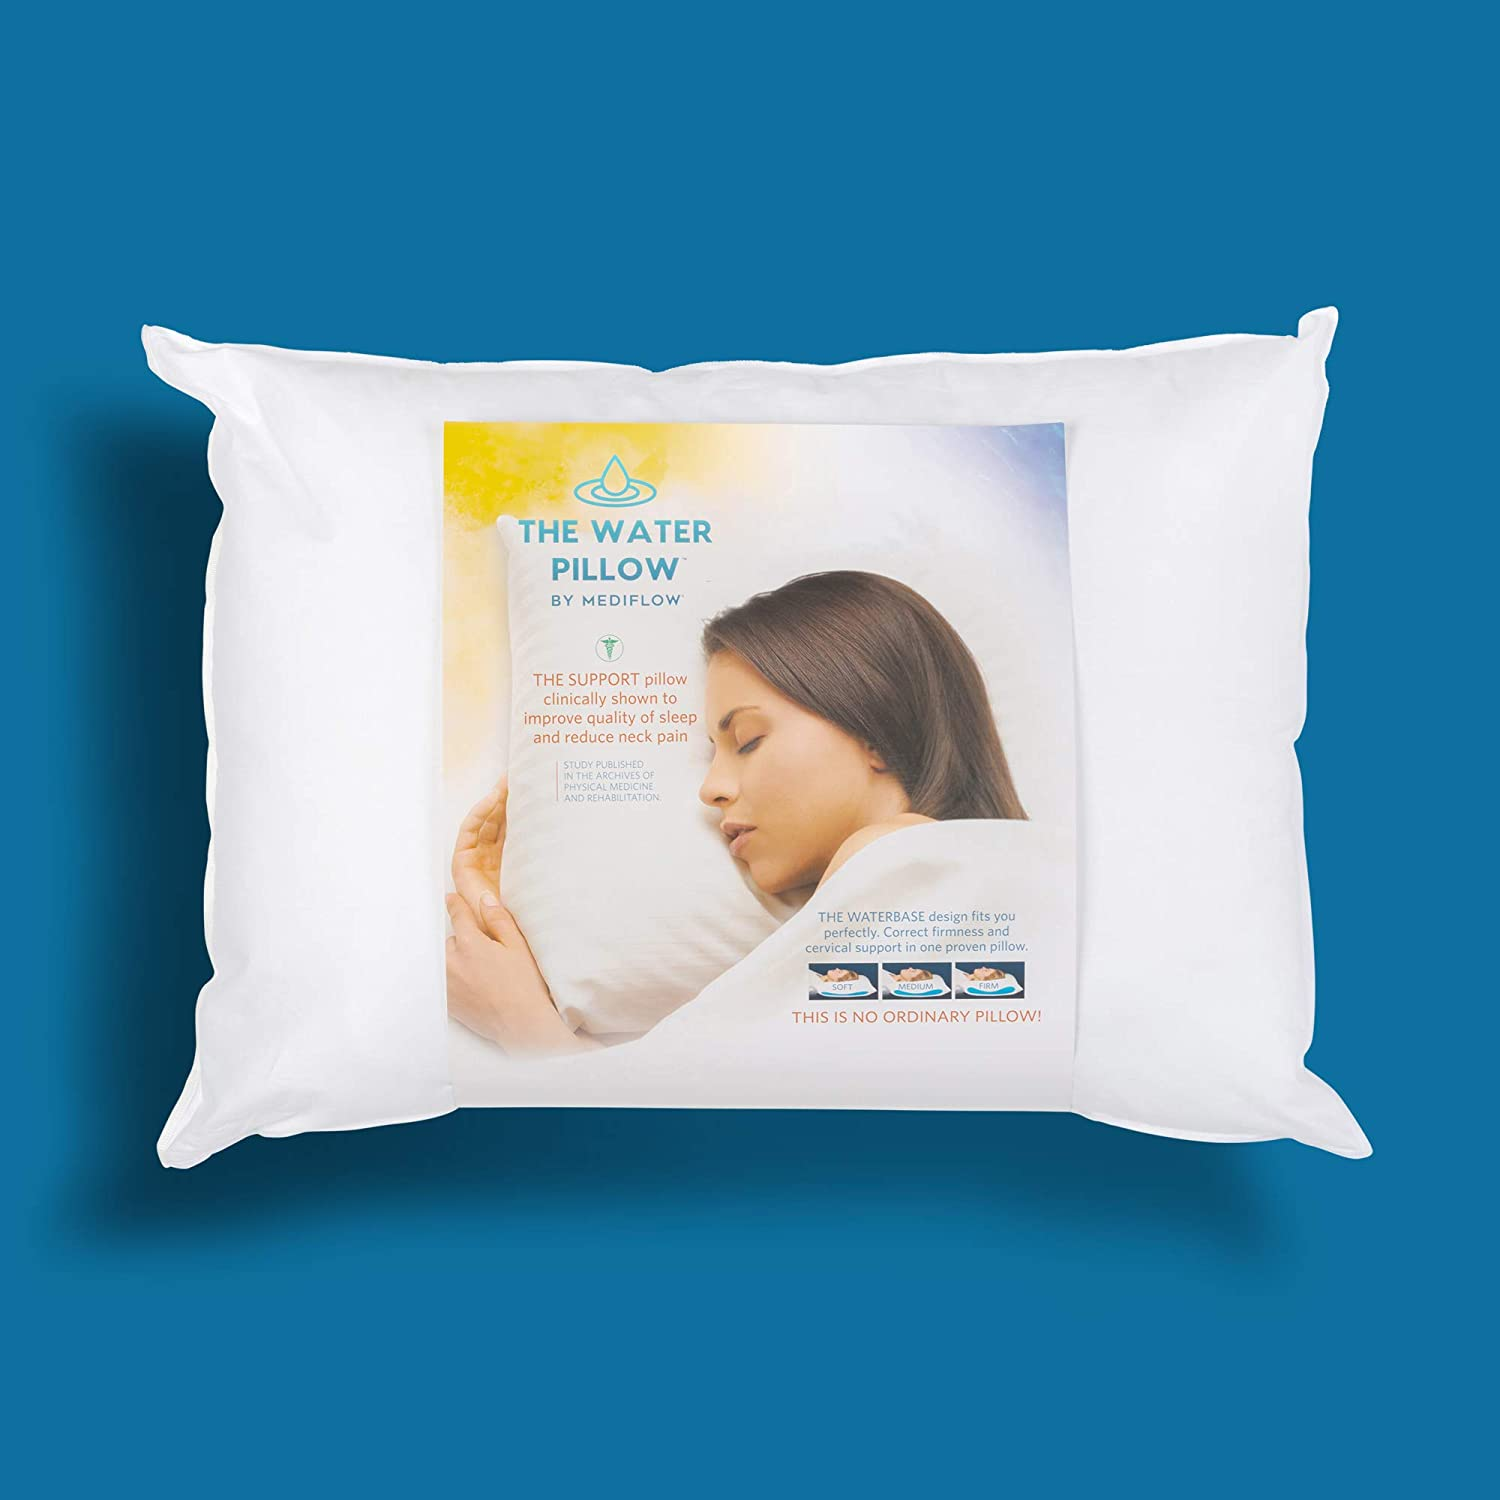 The water Pillow